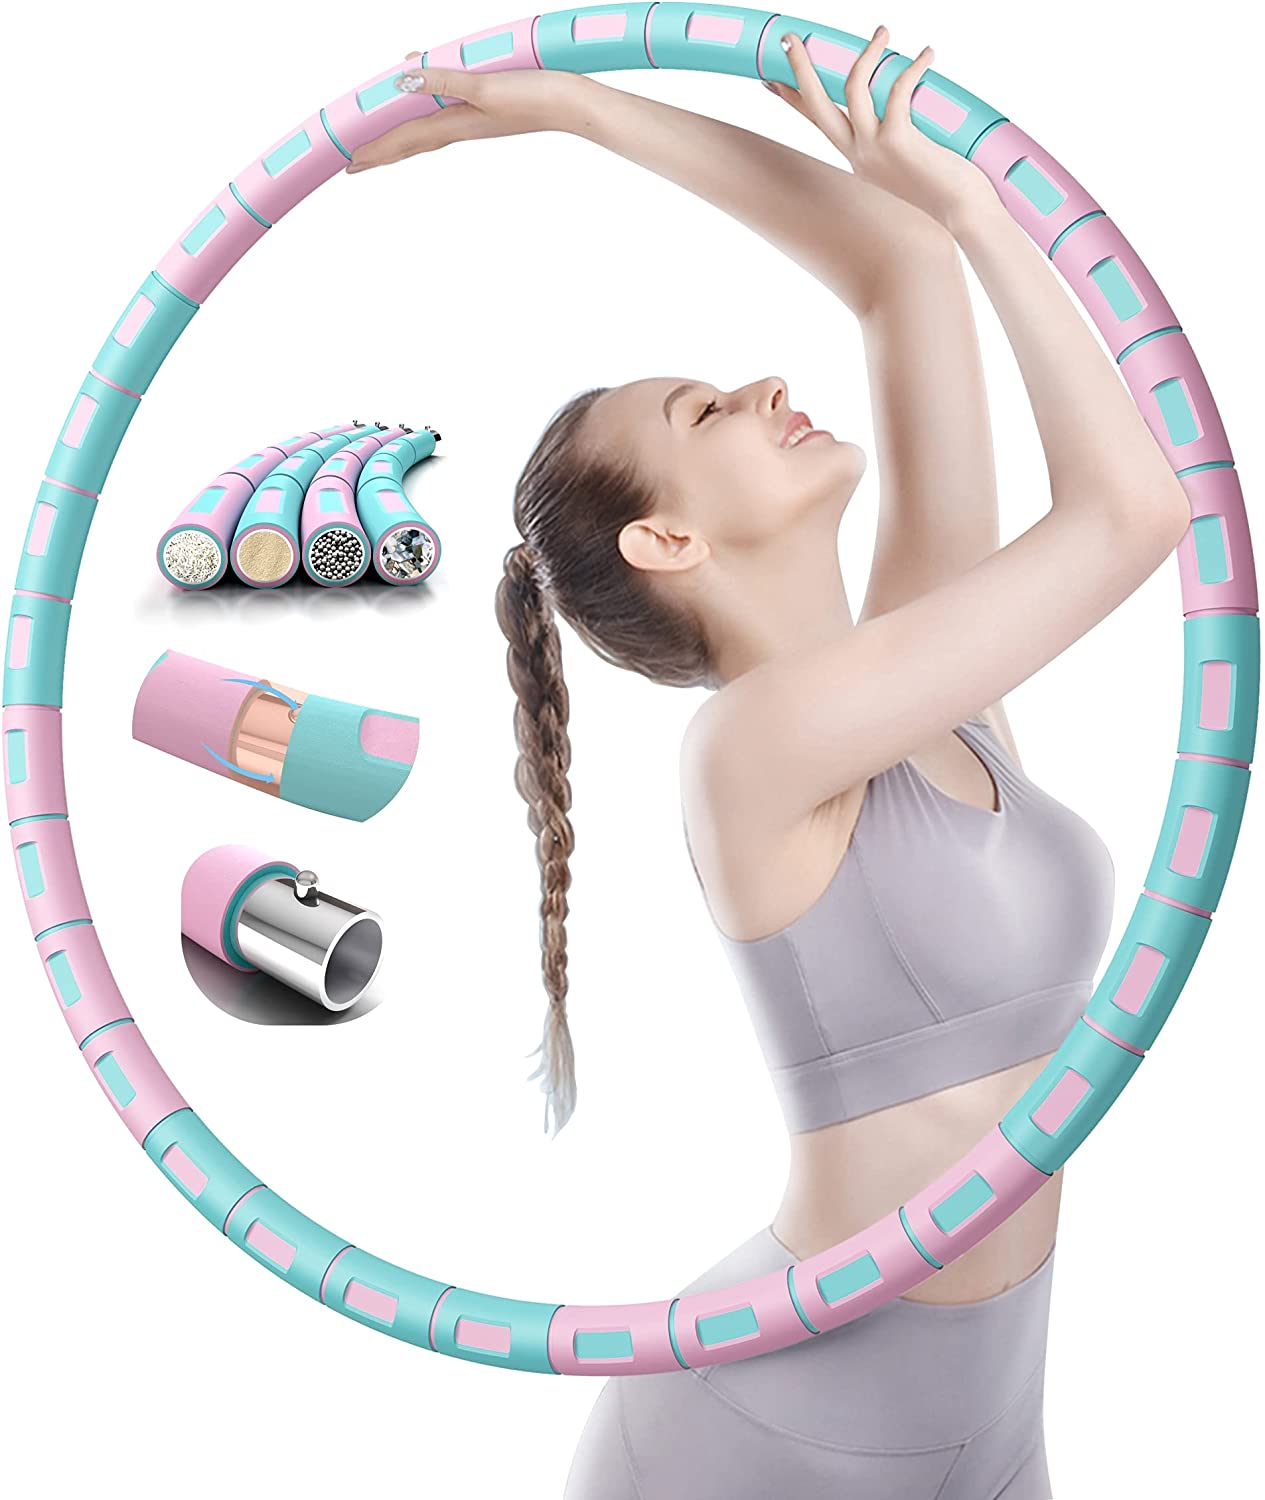 MALACHI Weighted Hula Hoop for Ho Bombing new work Baltimore Mall Exercise Detachable Section 8